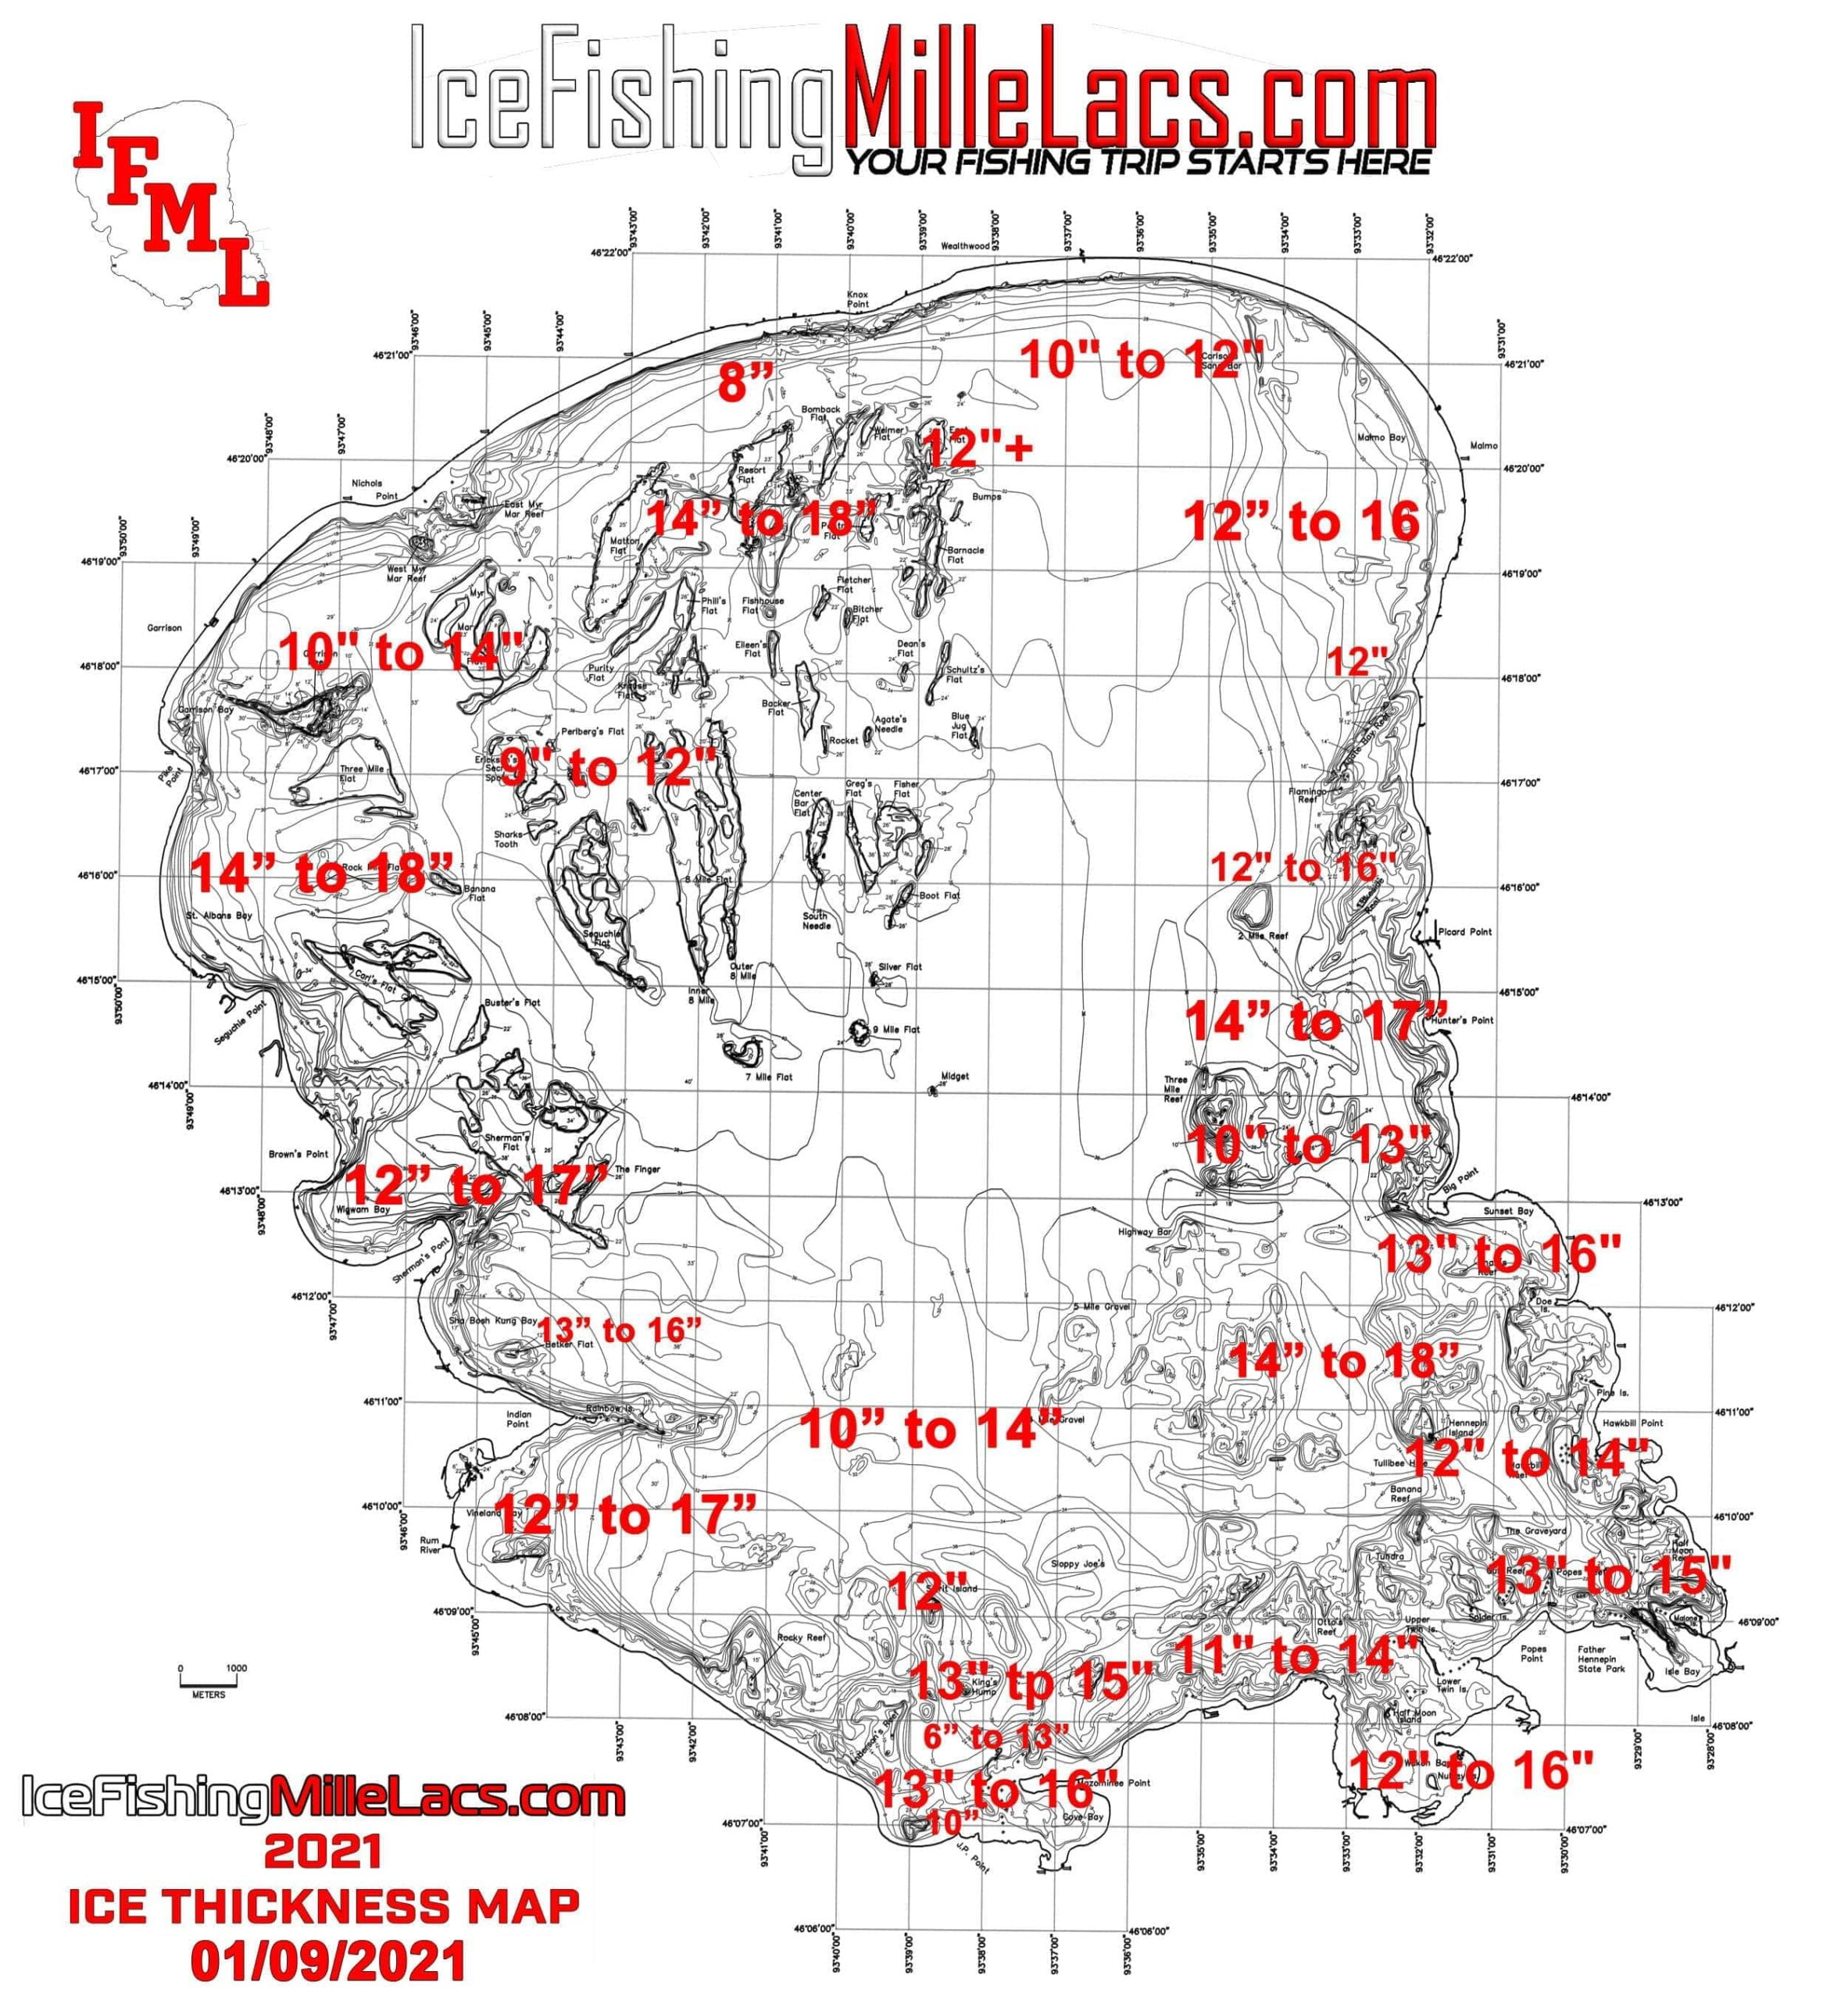 Mille Lacs Lake Ice Thickness Map Jan 01 09 2021